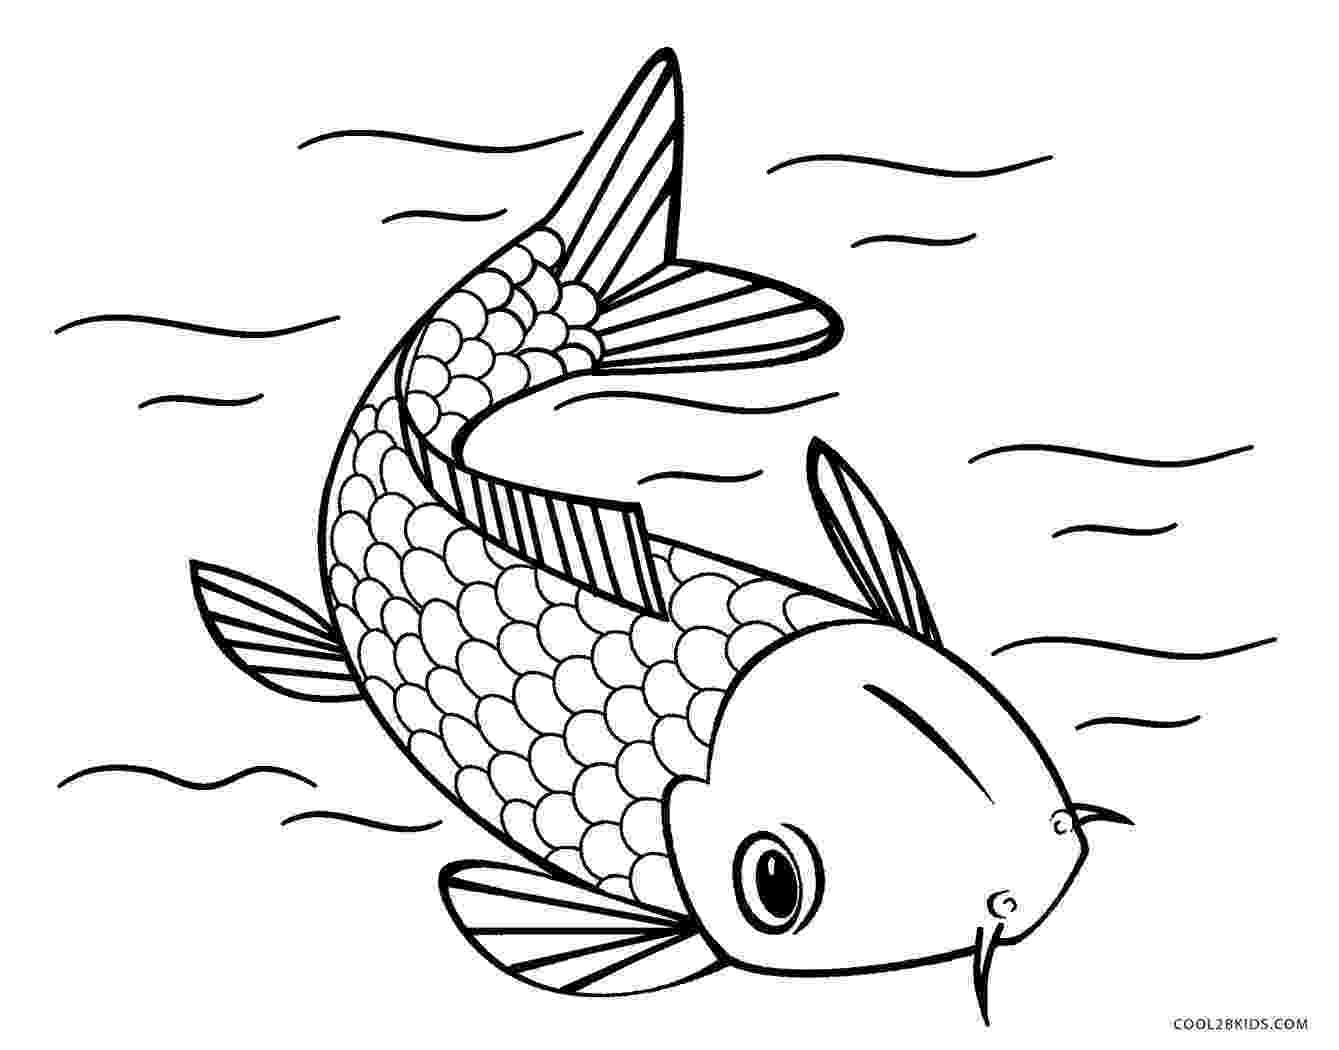 fish colouring book natchitoches national fish hatchery colouring book fish